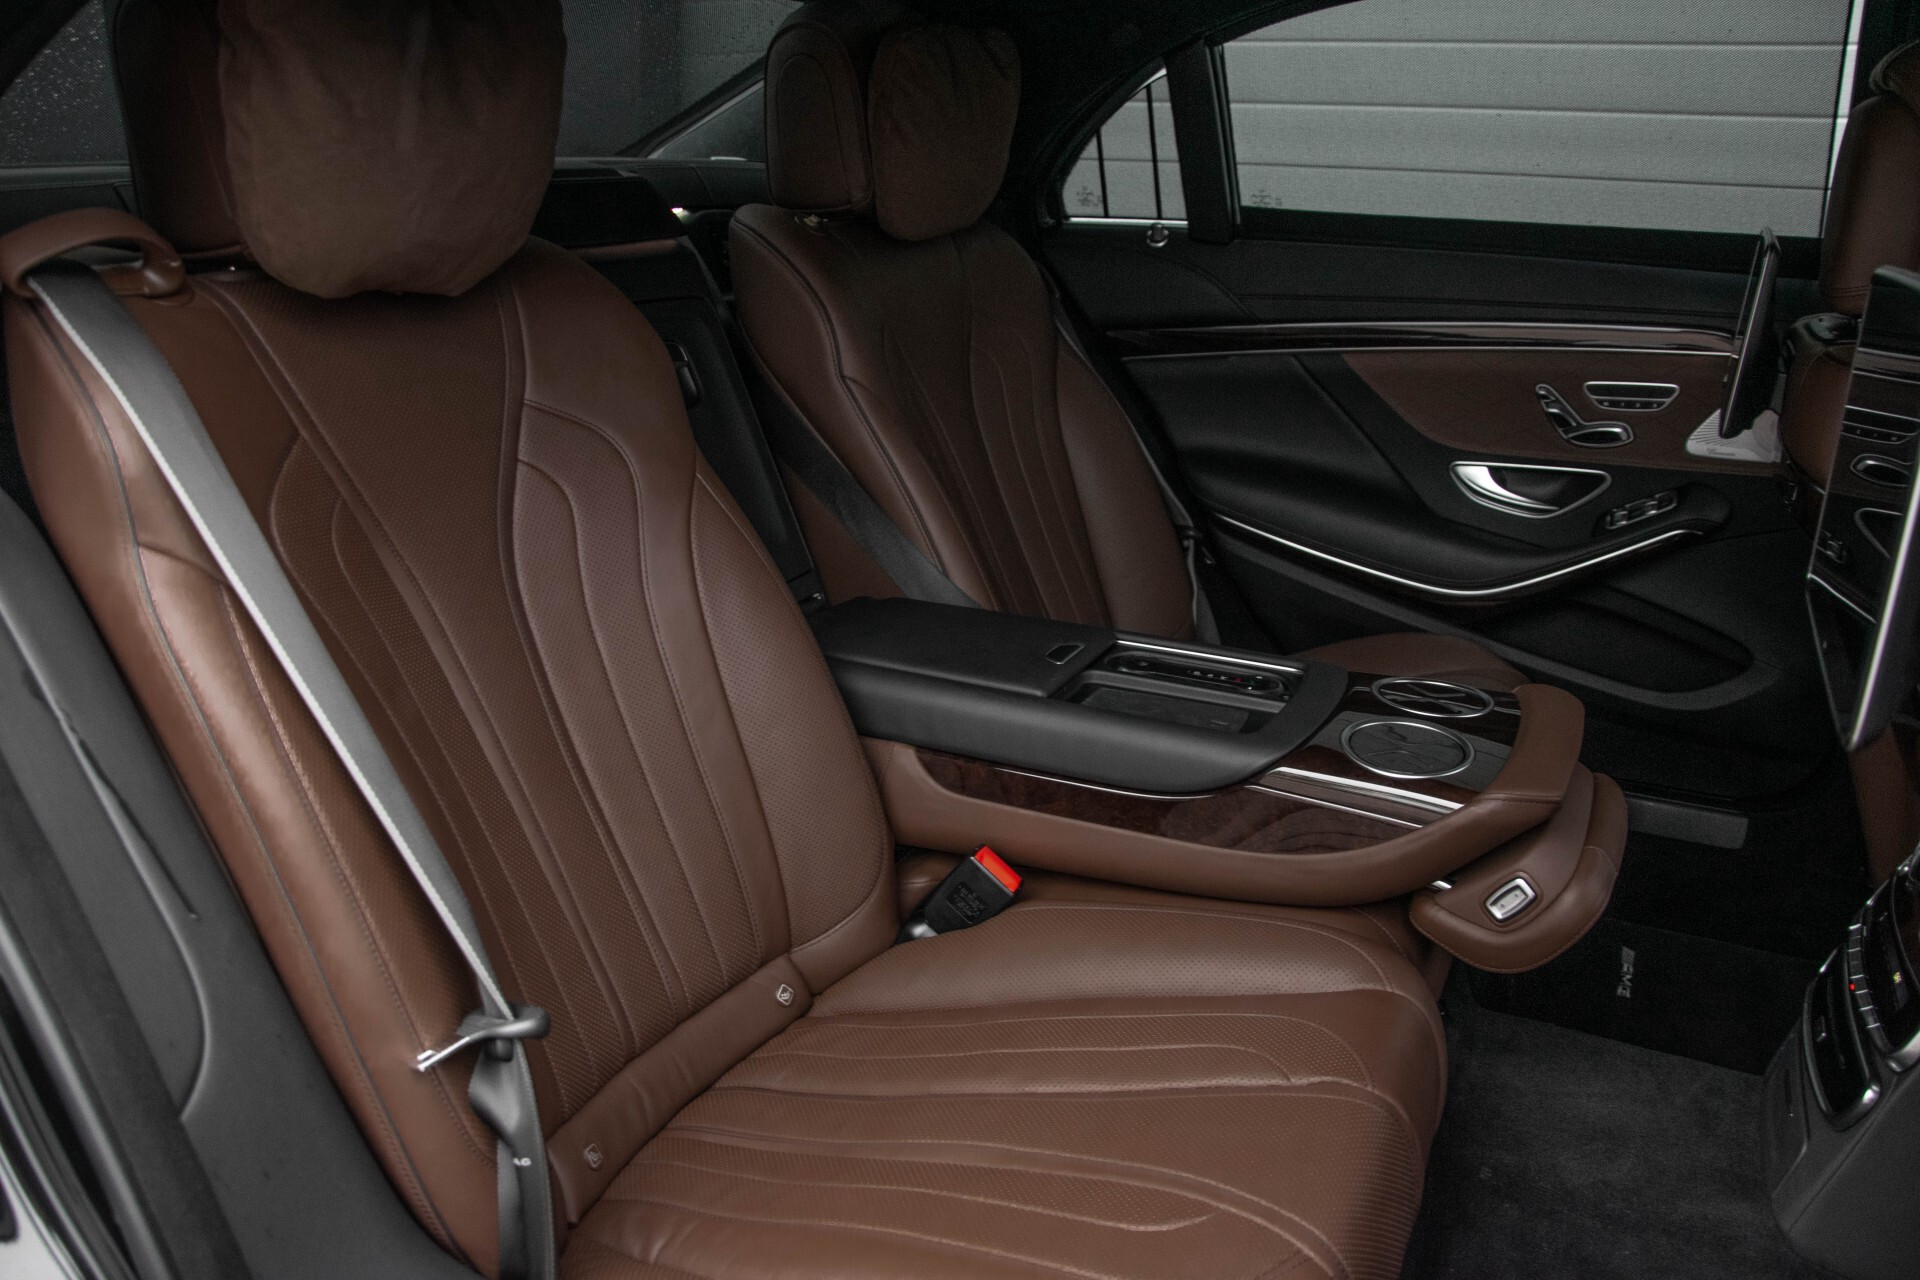 Mercedes-Benz S-Klasse 560 4-M Lang AMG Plus Exclusive Entertainment/Massage Aut9 Foto 5